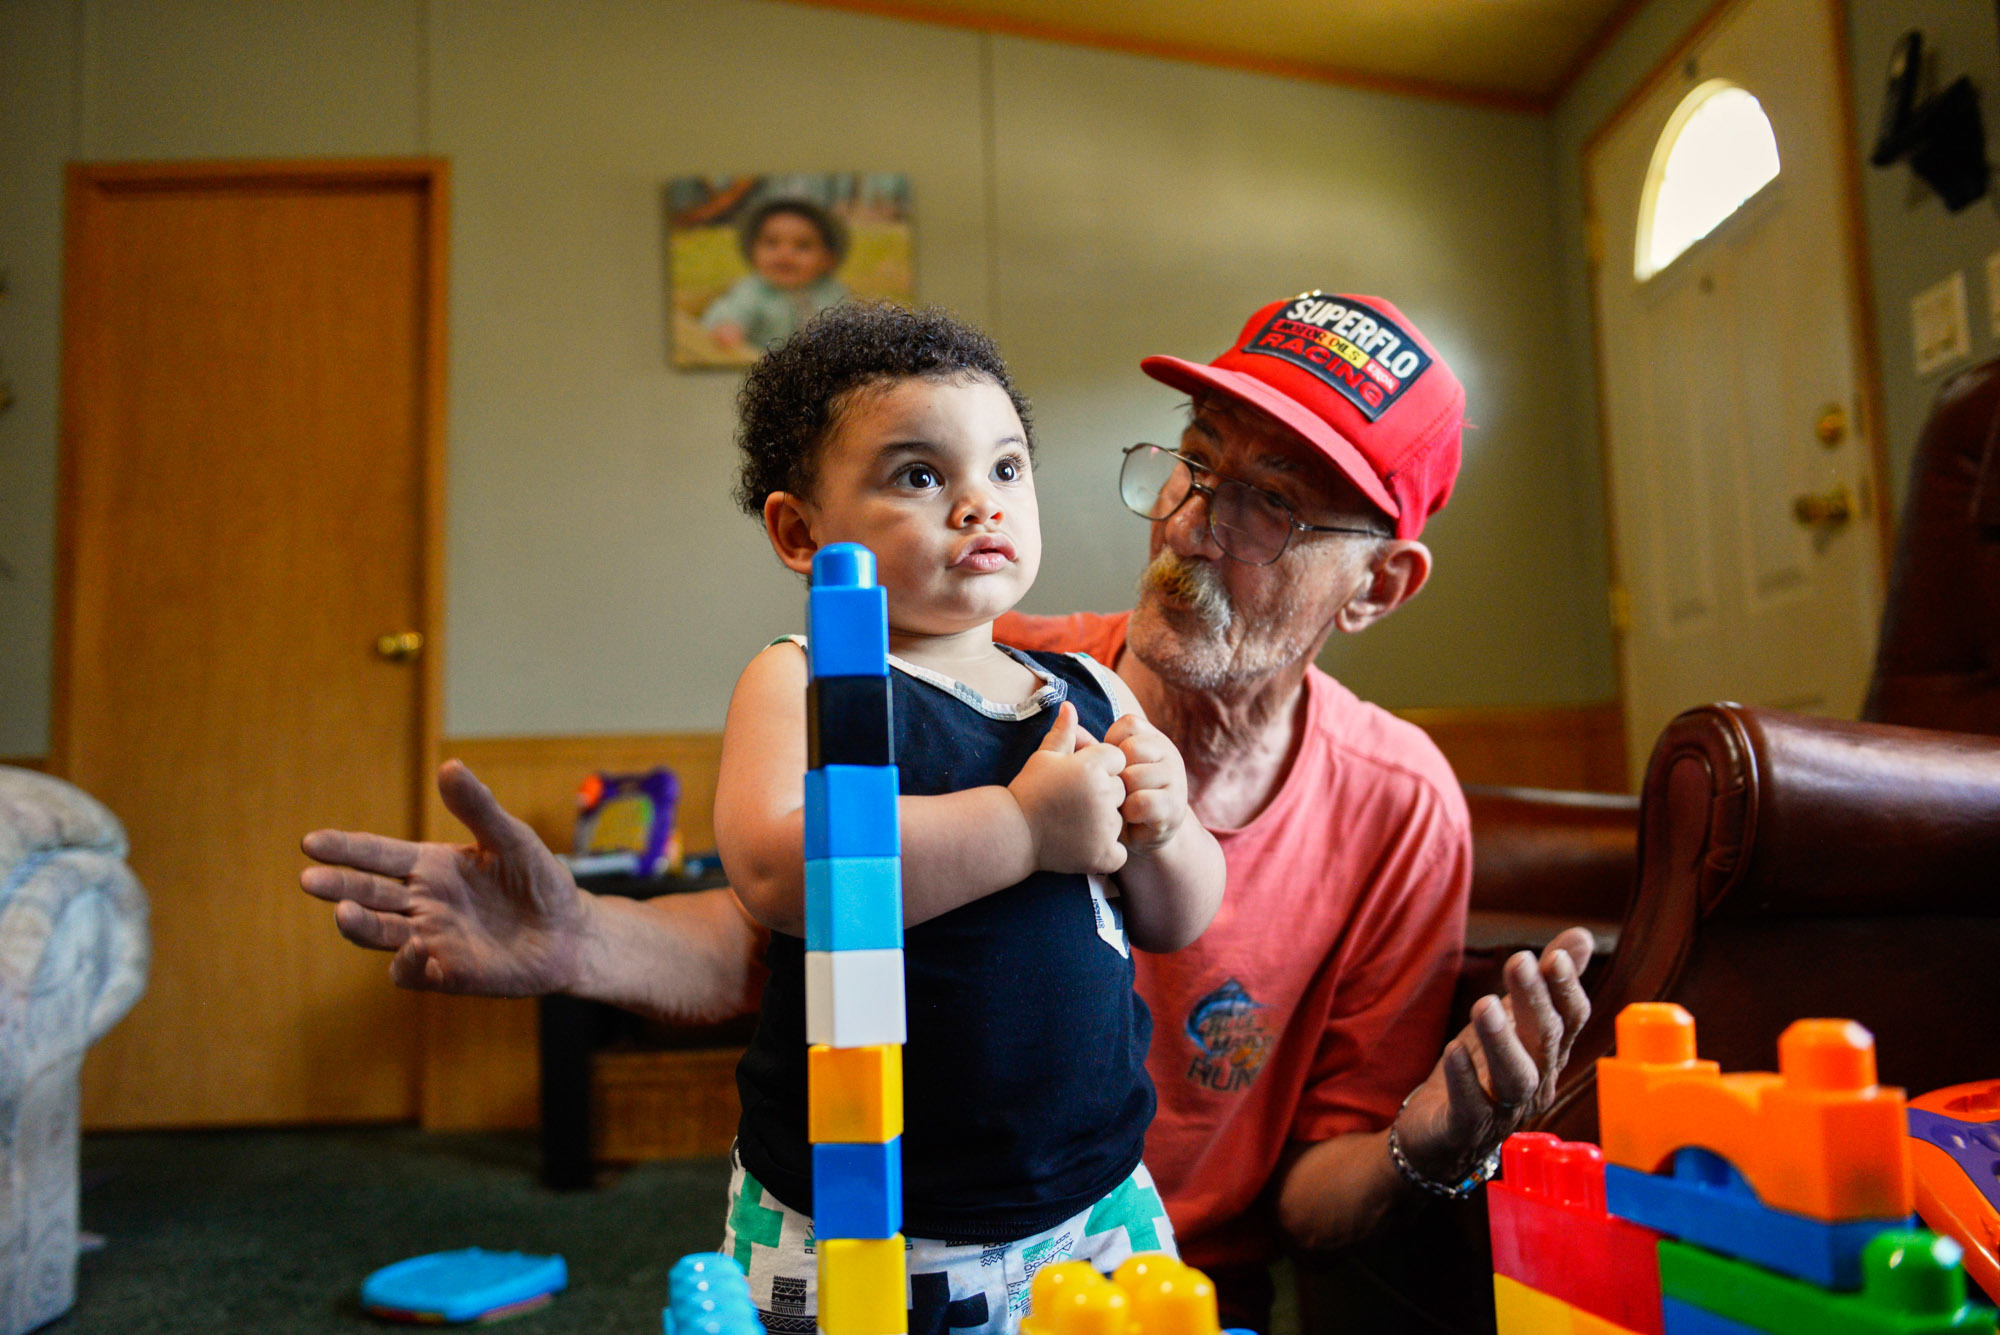 Jack Zimmerman (right) has been a key player in his daughter, Kelly's recovery, driving her to all her appointments and helping her take care of her young son Jaxton (left).